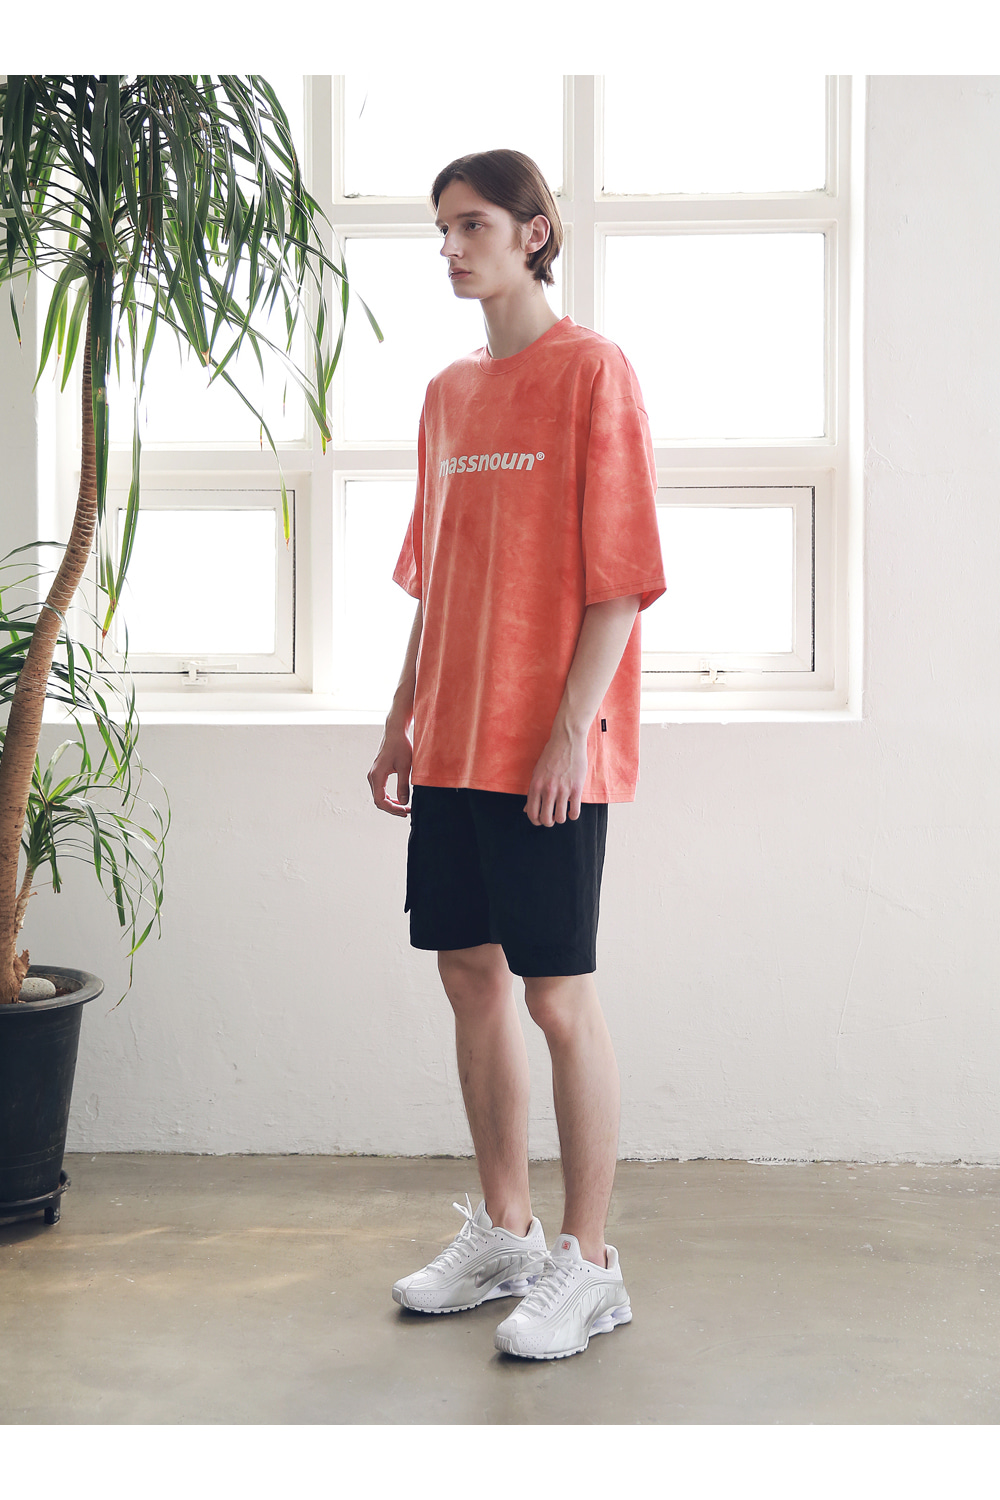 매스노운(MASSNOUN) SL LOGO TIE-DYE OVERSIZED T-SHIRTS MSNTS009-CR